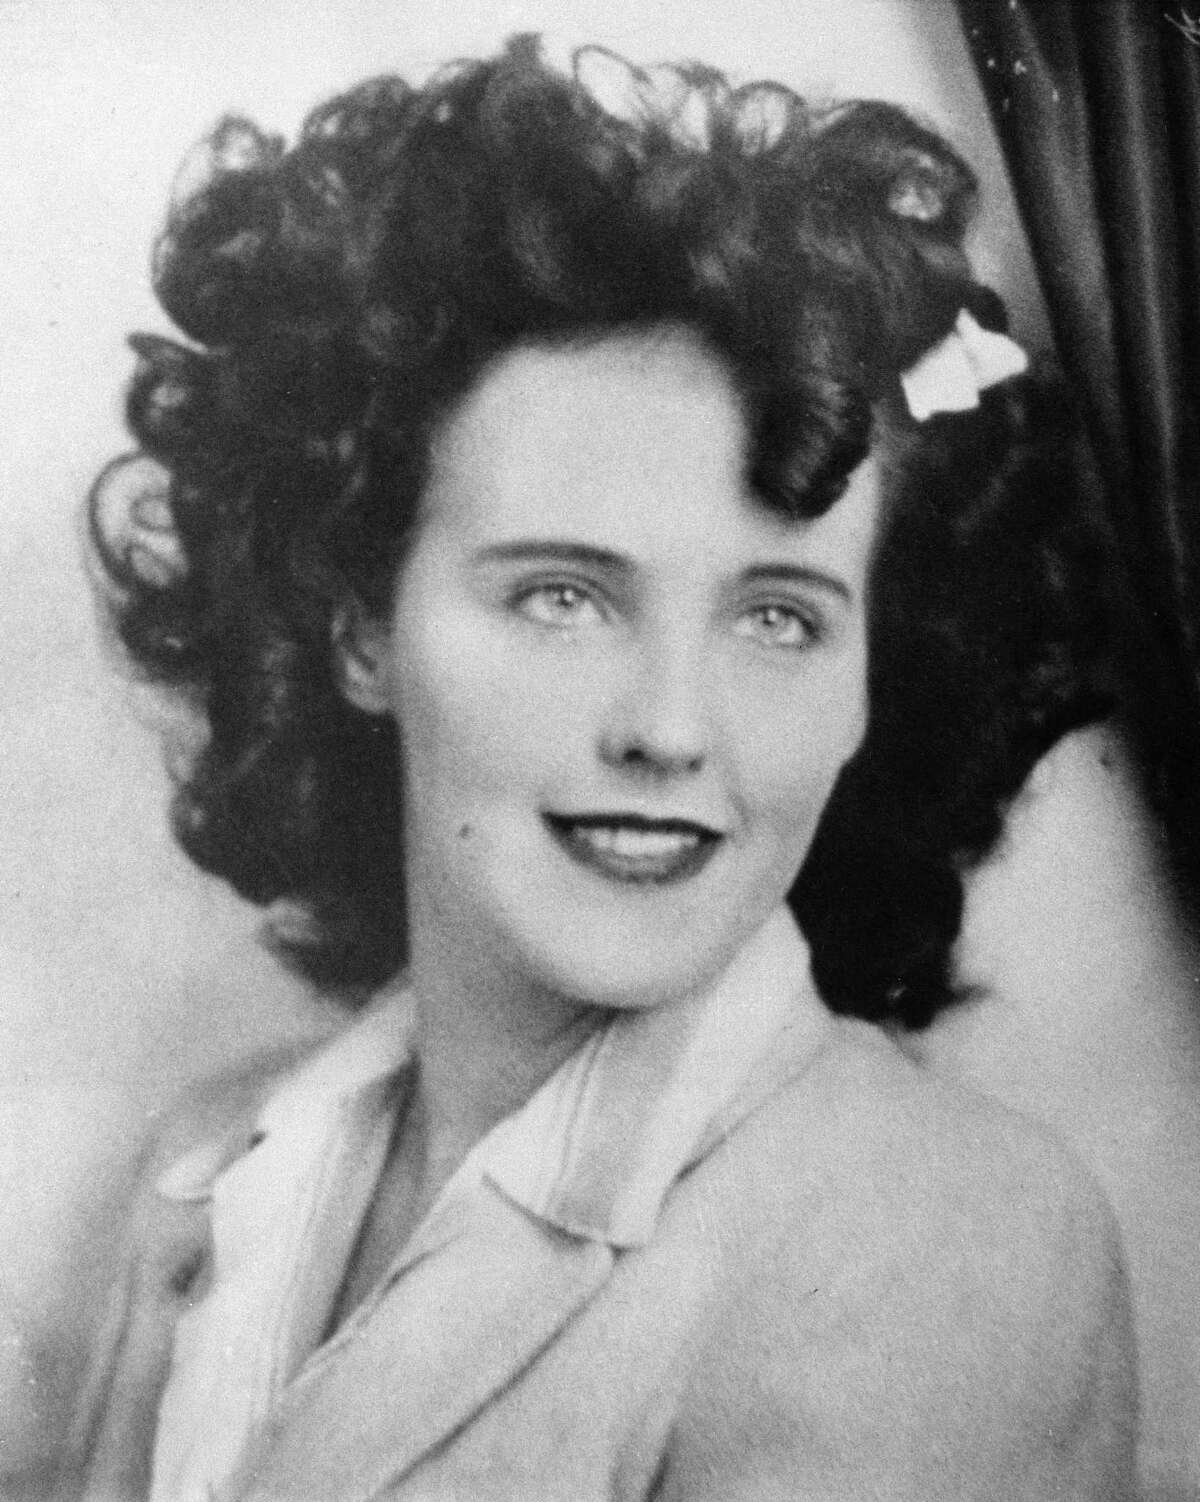 Actress Elizabeth Short, known as Black Dahlia, is seen in this undated photo. Short died at age 22, her slain body found in a Los Angeles parking lot on Jan. 15, 1947. (AP Photo)